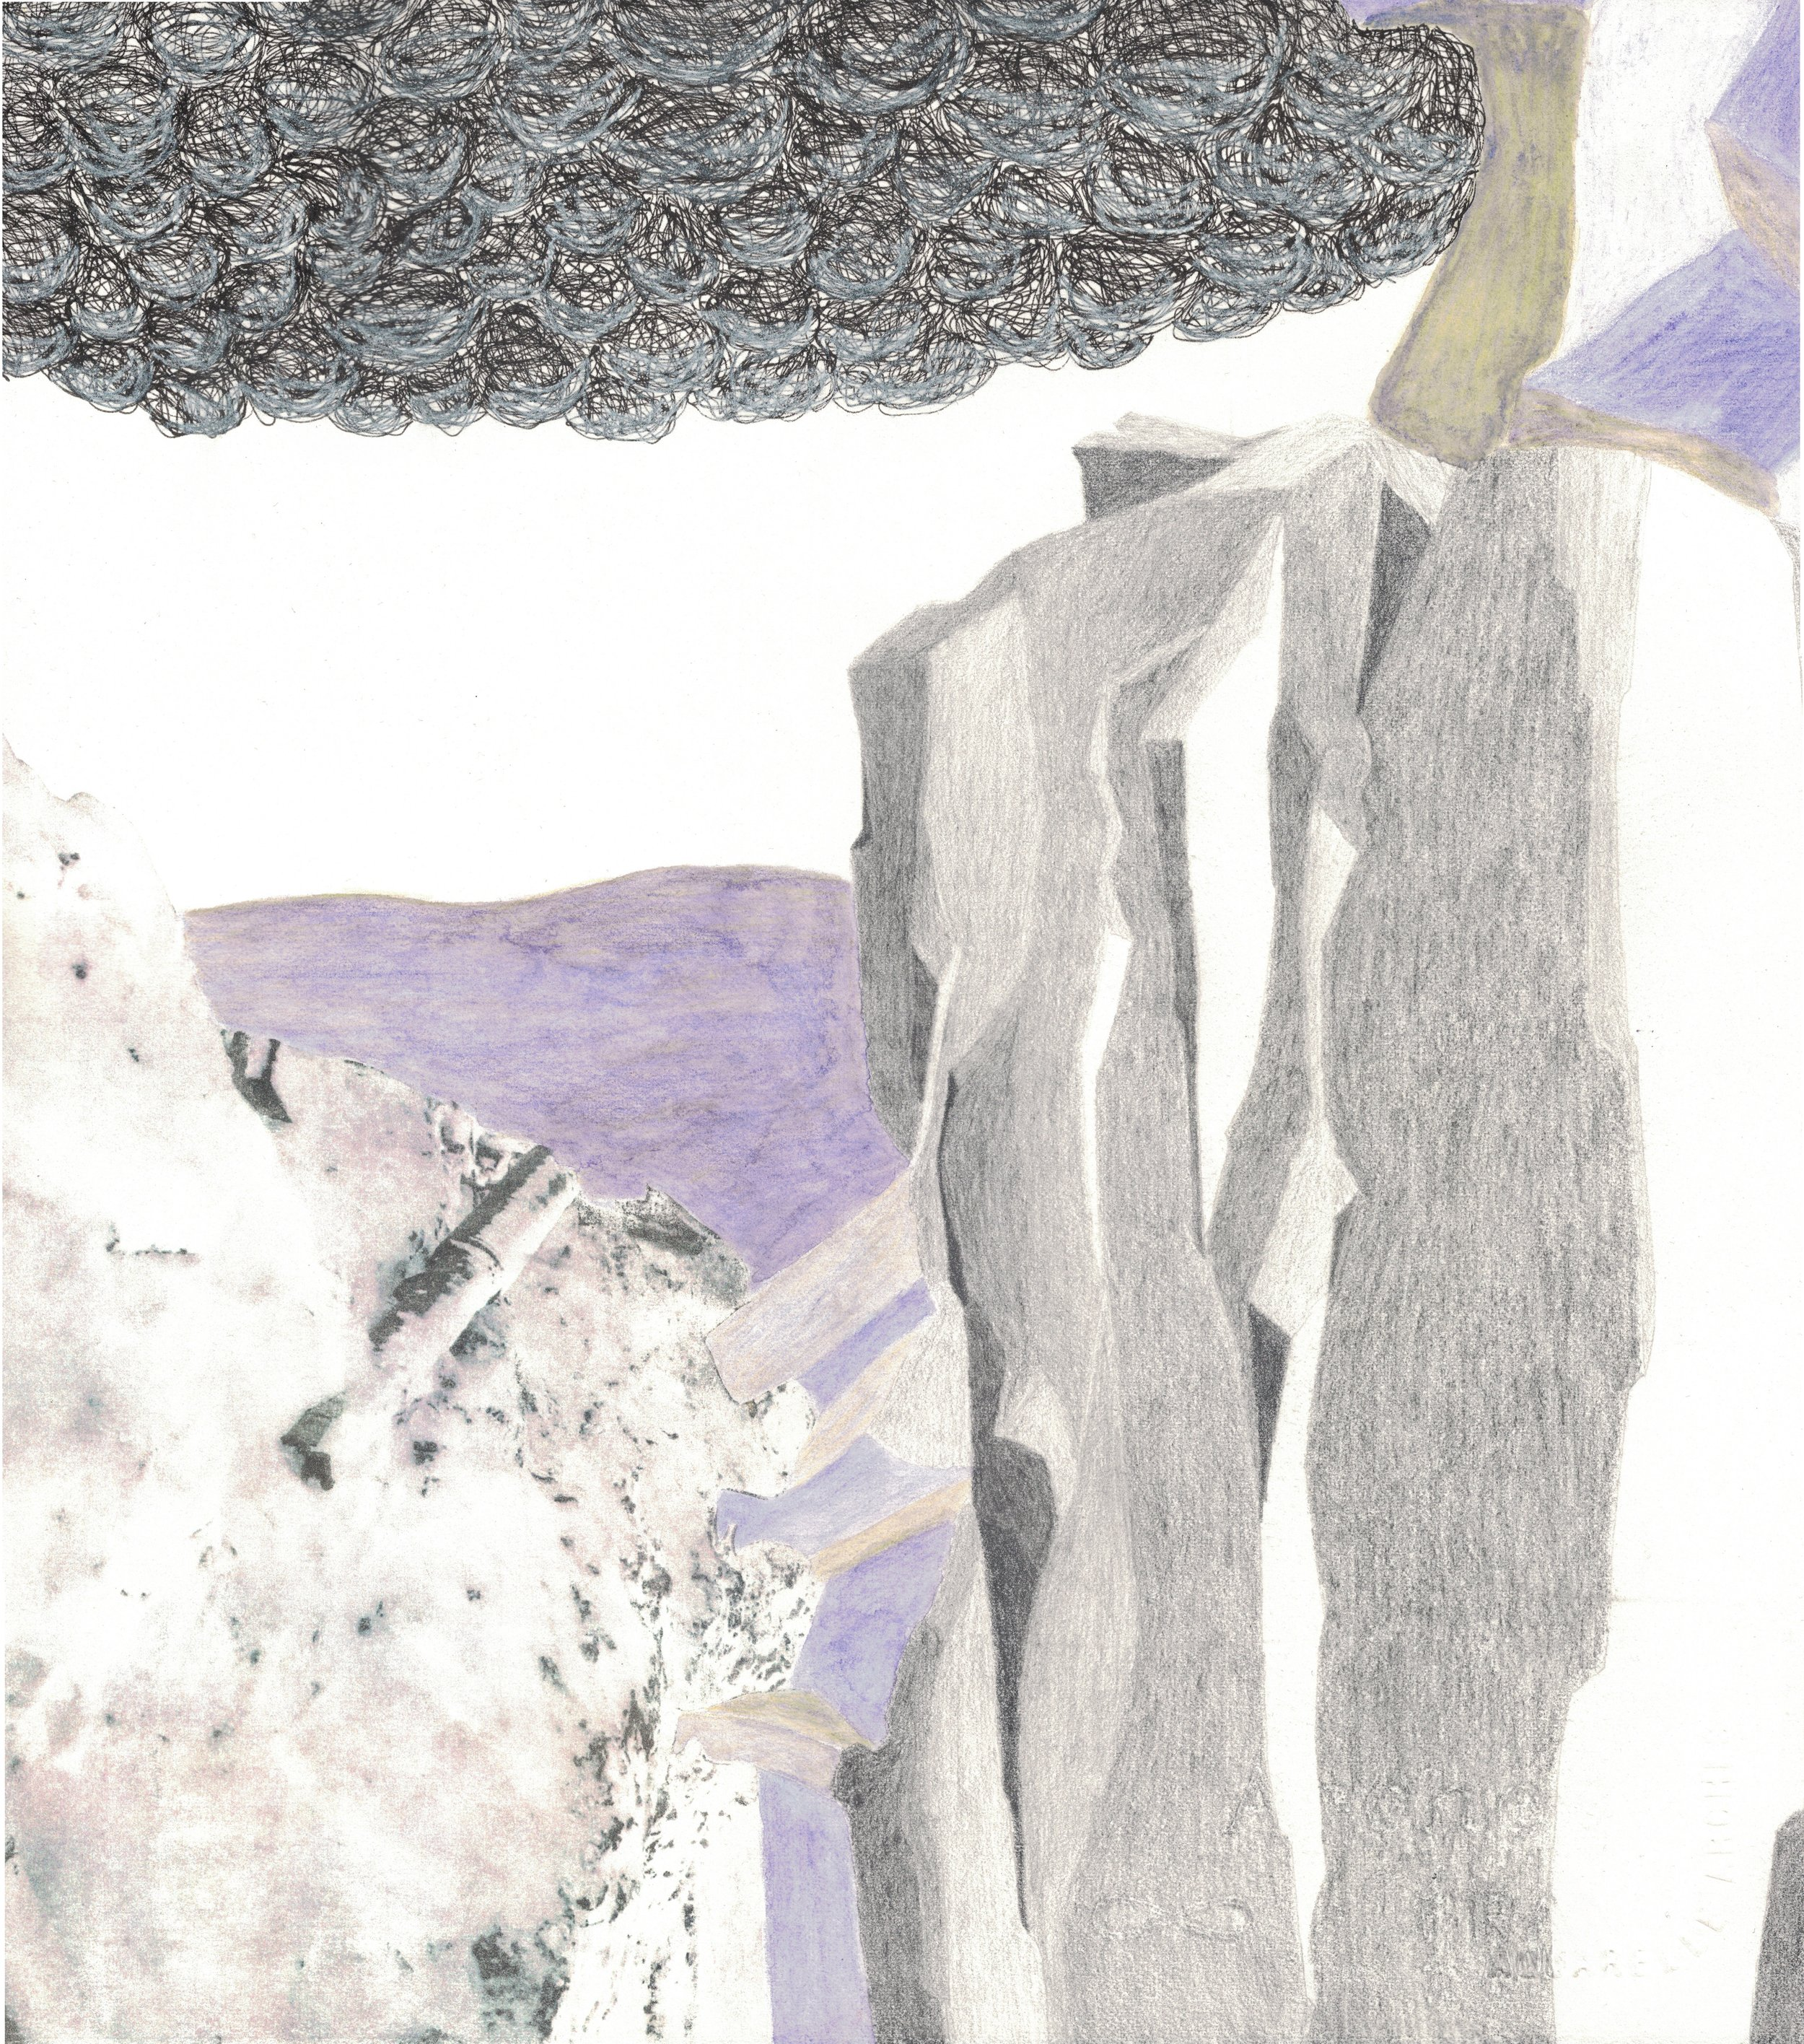 """Waterfall  Found Image, Charcoal, Watercolor, Pen, and Graphite on Paper, 11.25"""" x 10"""", 2015, $50, Available"""